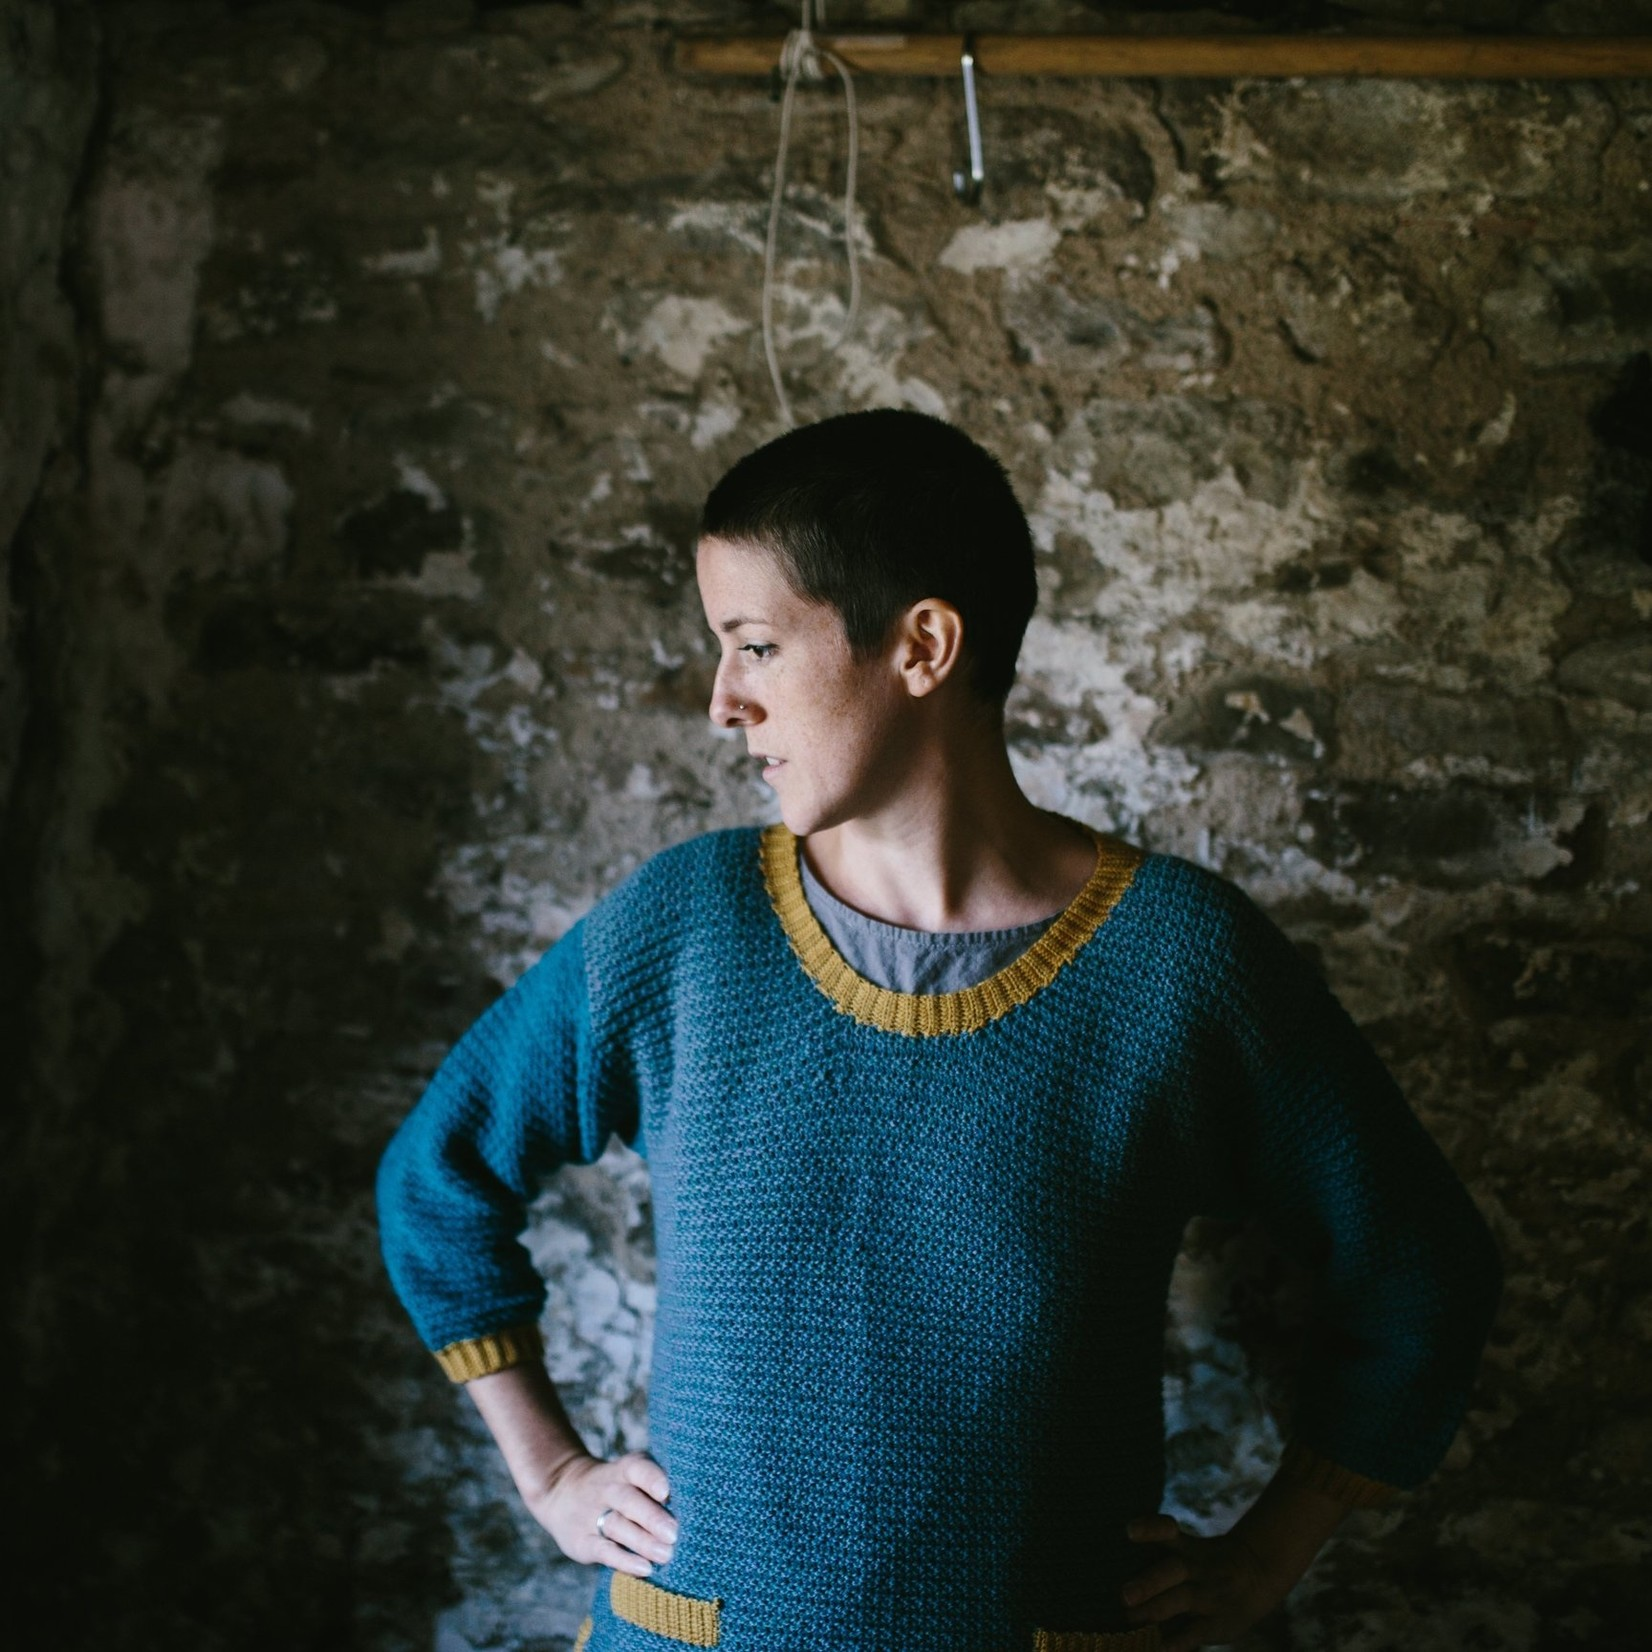 The Crochet Project Everyday Wearables